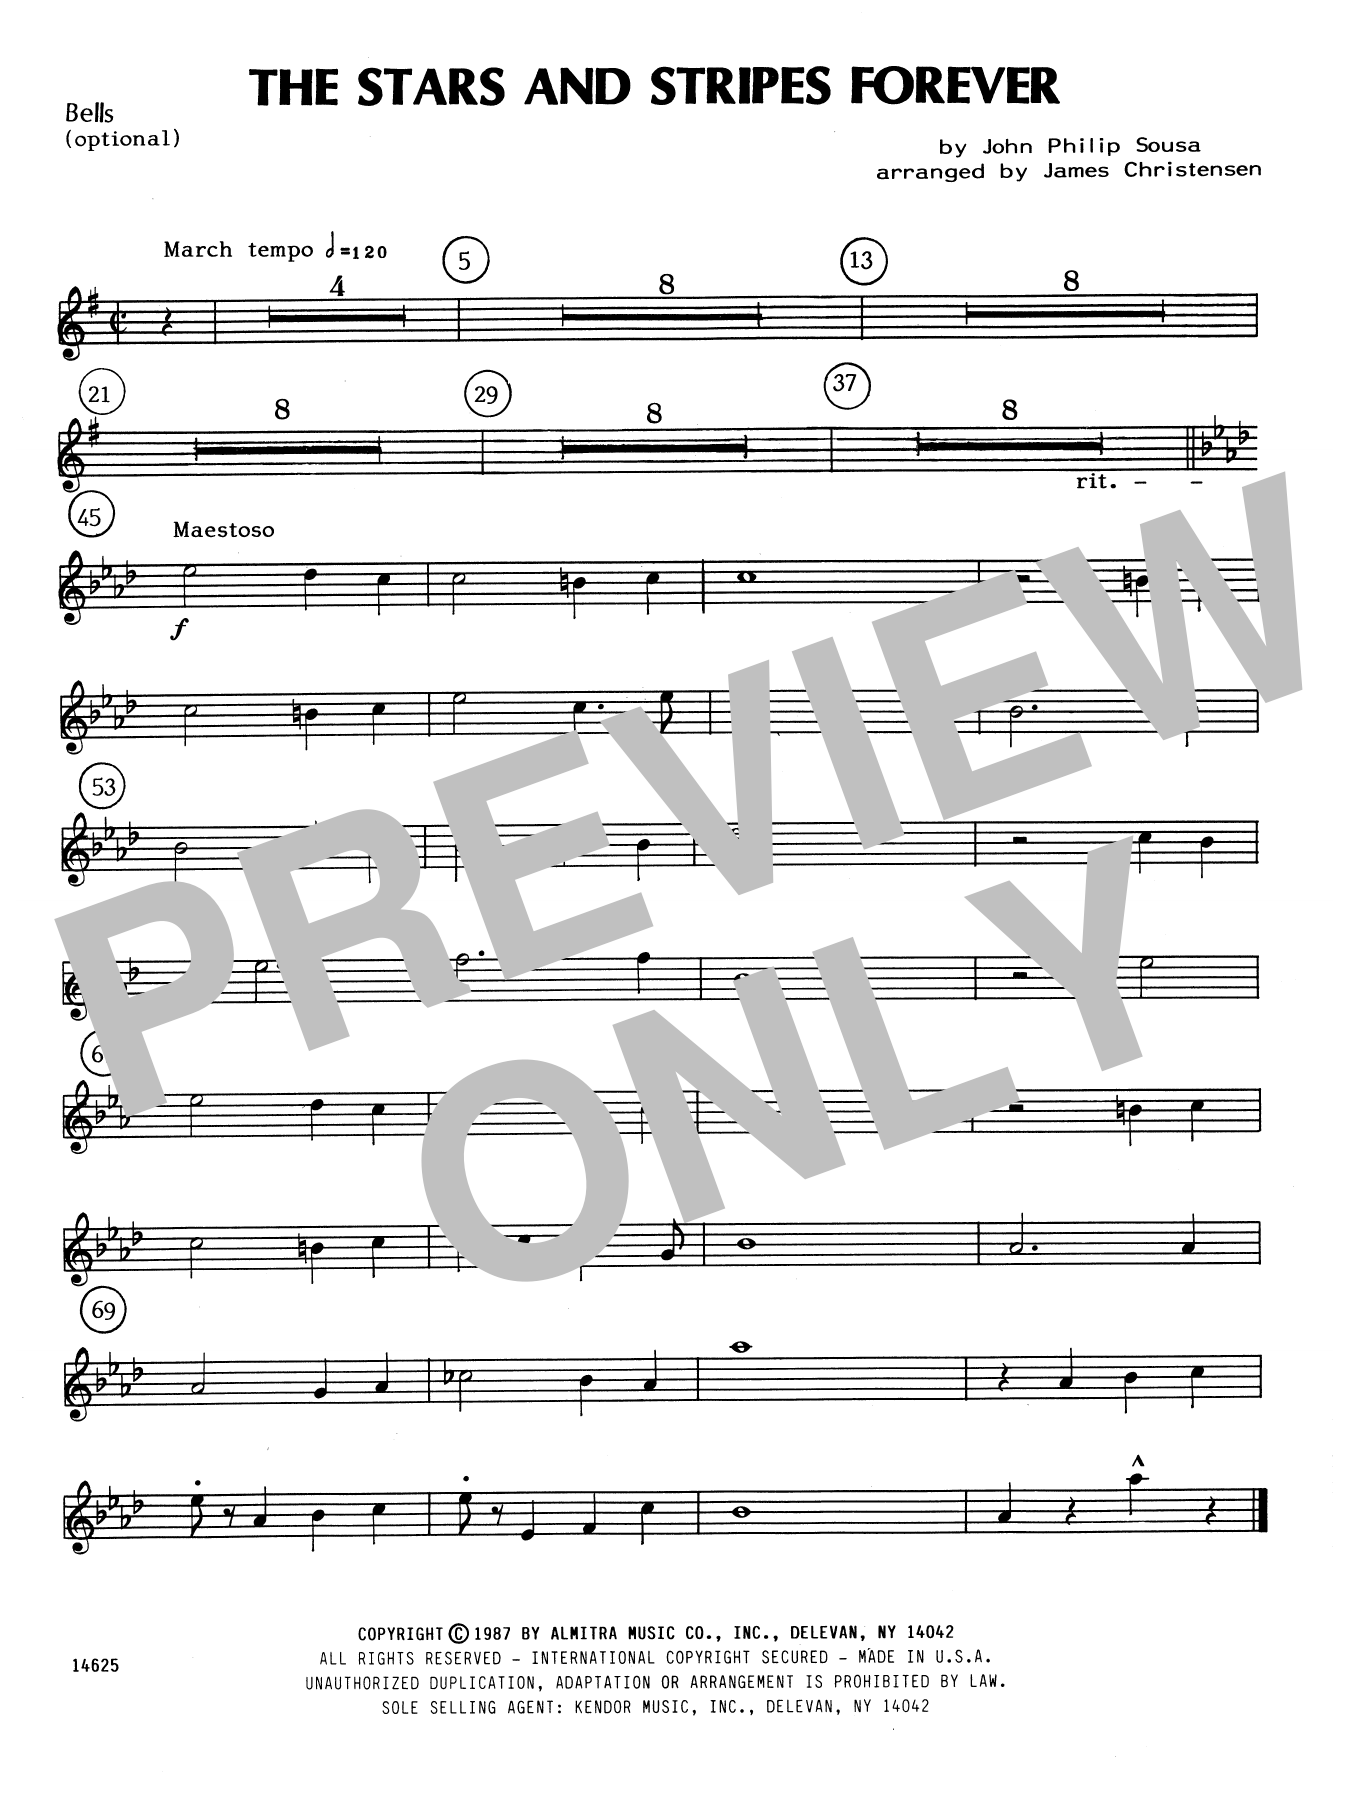 the stars and stripes forever The stars and stripes forever lyrics by john philip sousa – 1897 download a printable pdf – the stars and stripes forever lyrics let martial note in triumph float.